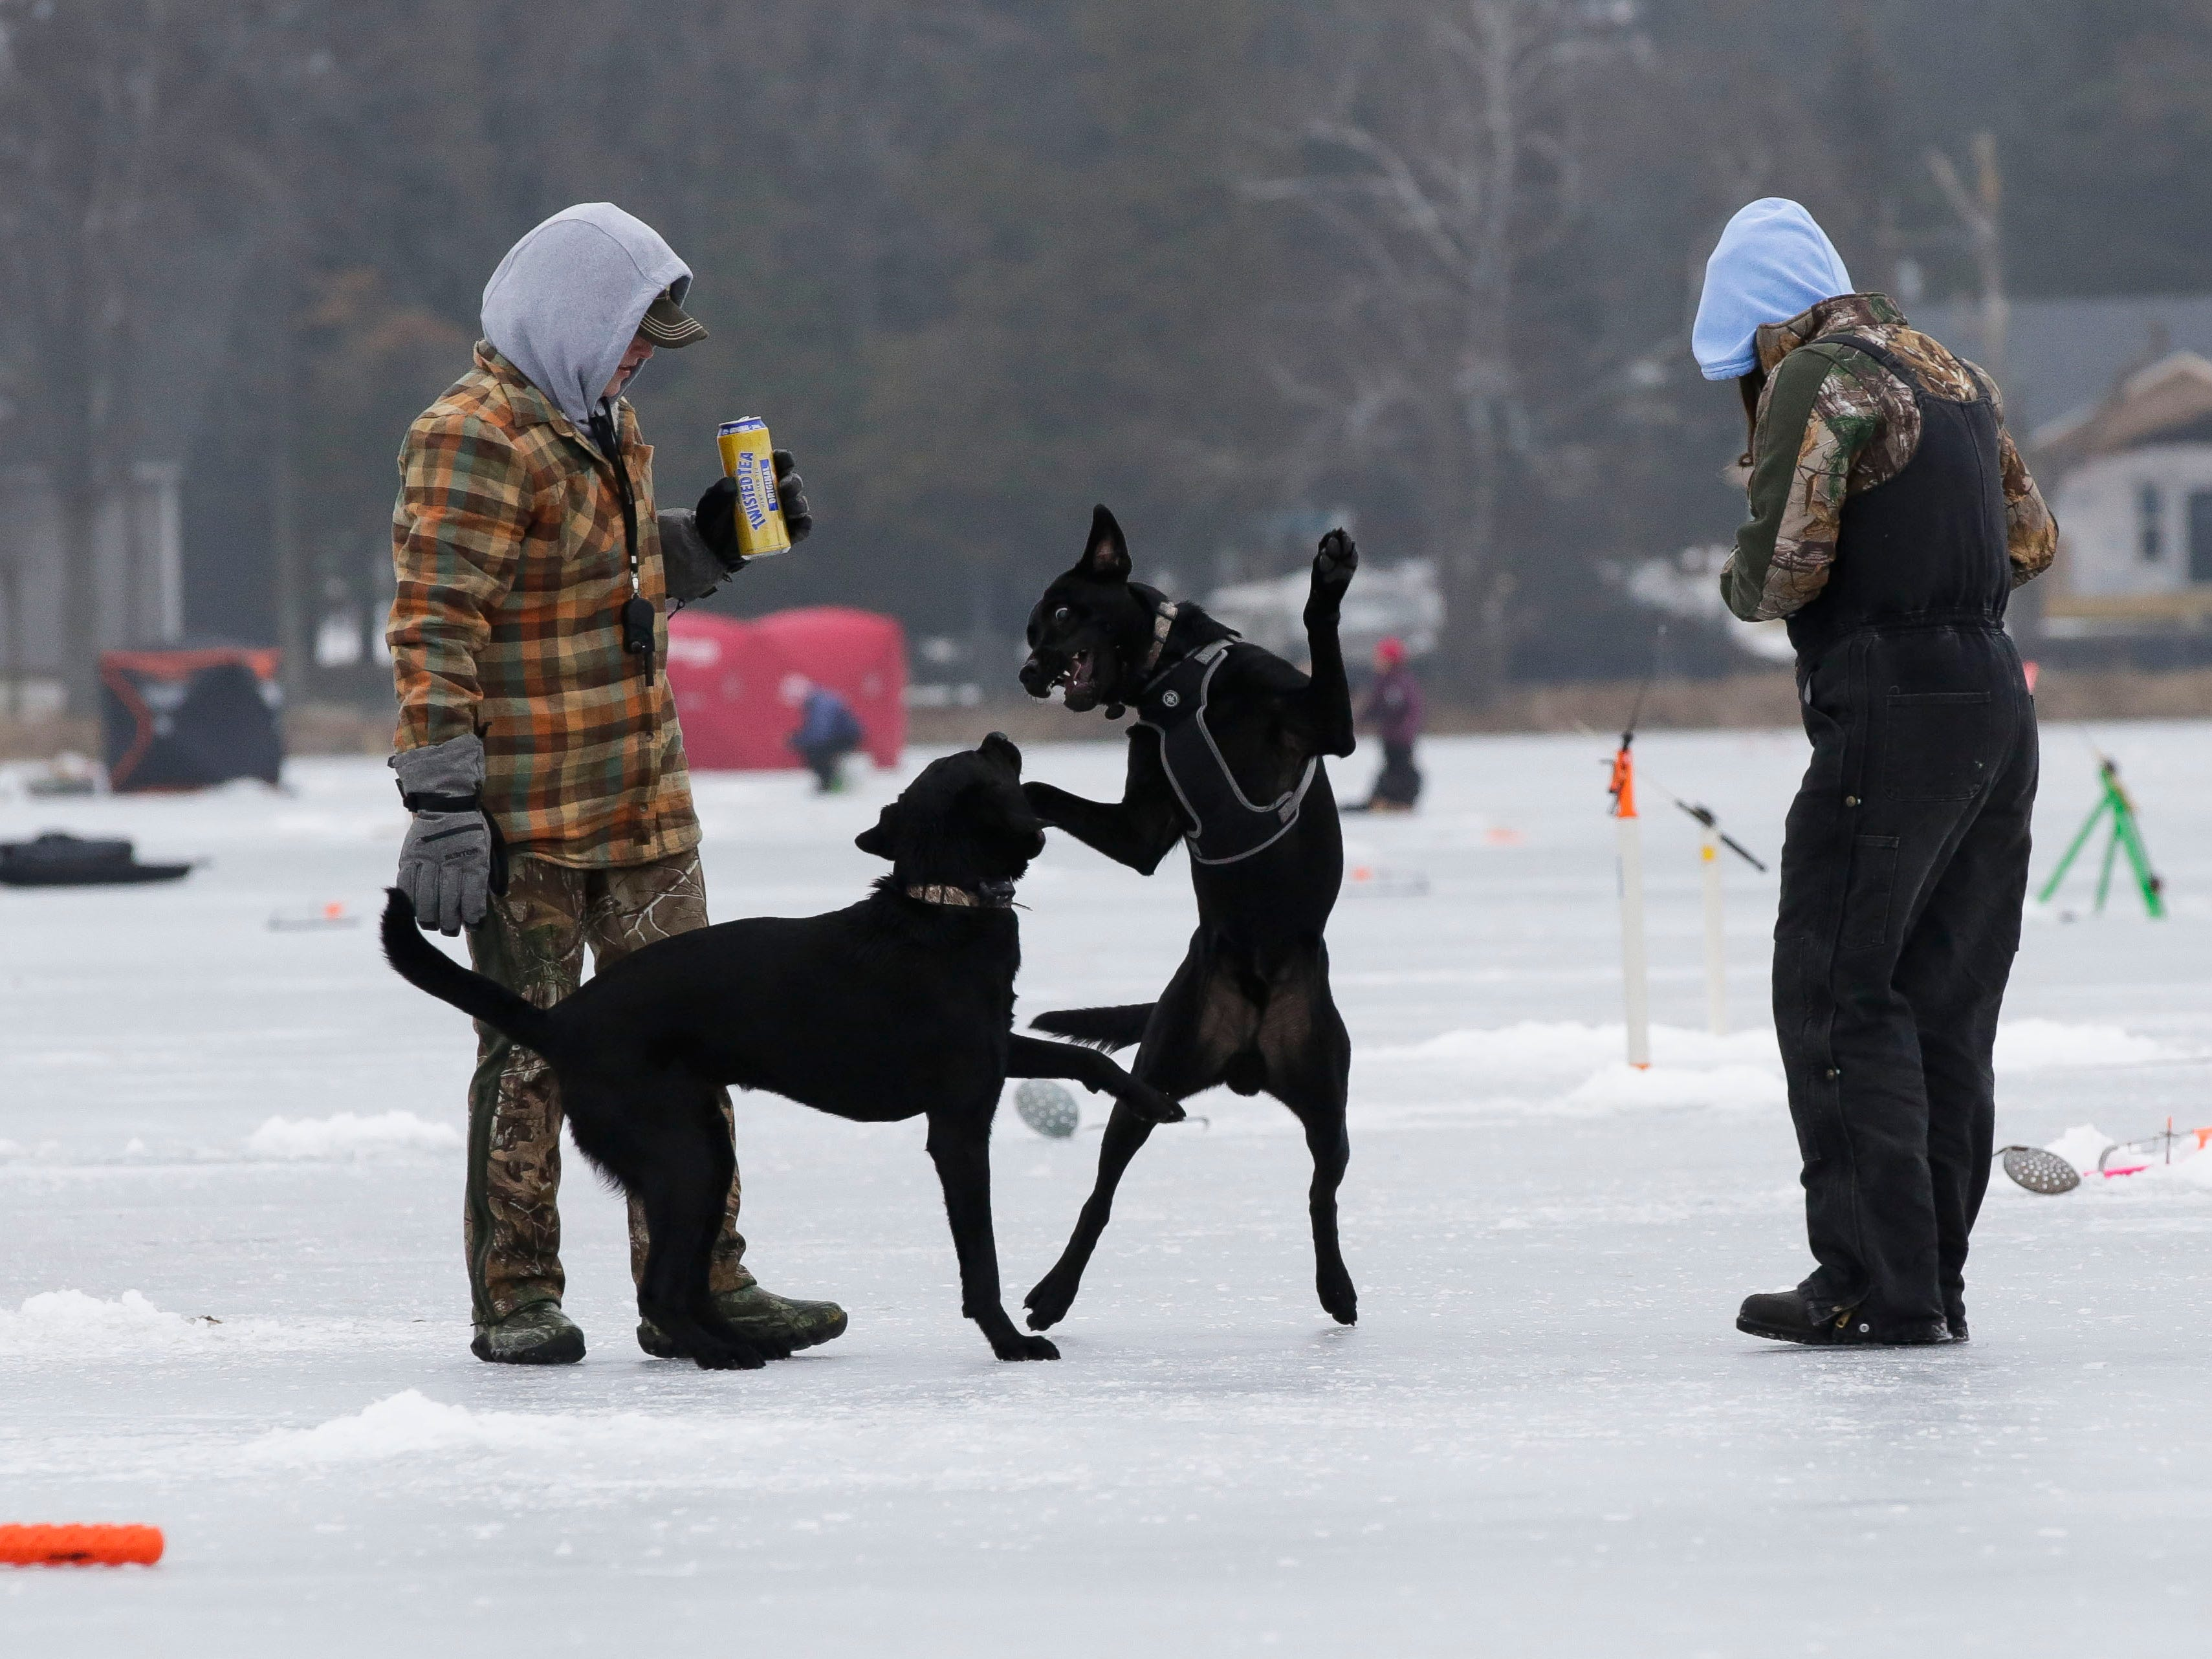 Natalie Widder and Beka Oliver watch as their dogs, play on Saturday, January 12, 2019, during the Rosholt Blizzard Busters Fisheree at Lake Helen outside Rosholt, Wis.Tork Mason/USA TODAY NETWORK-Wisconsin